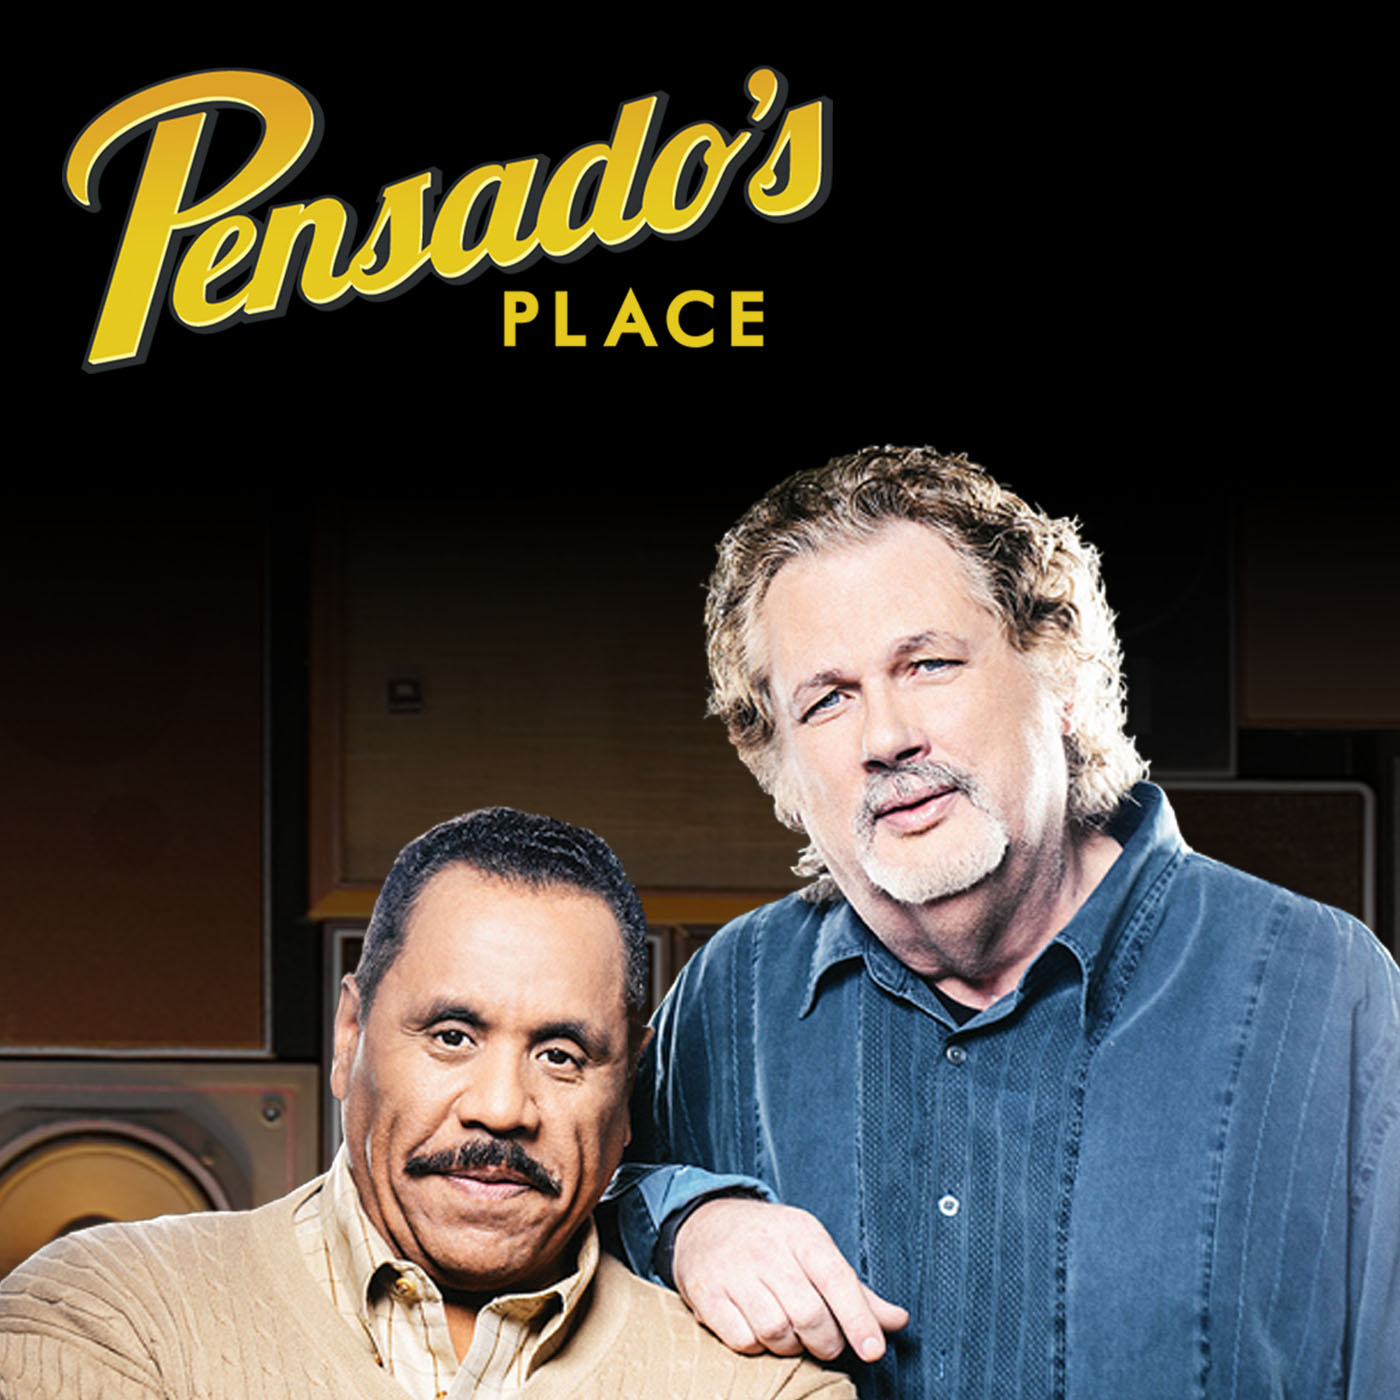 Pensado's Place – Audio